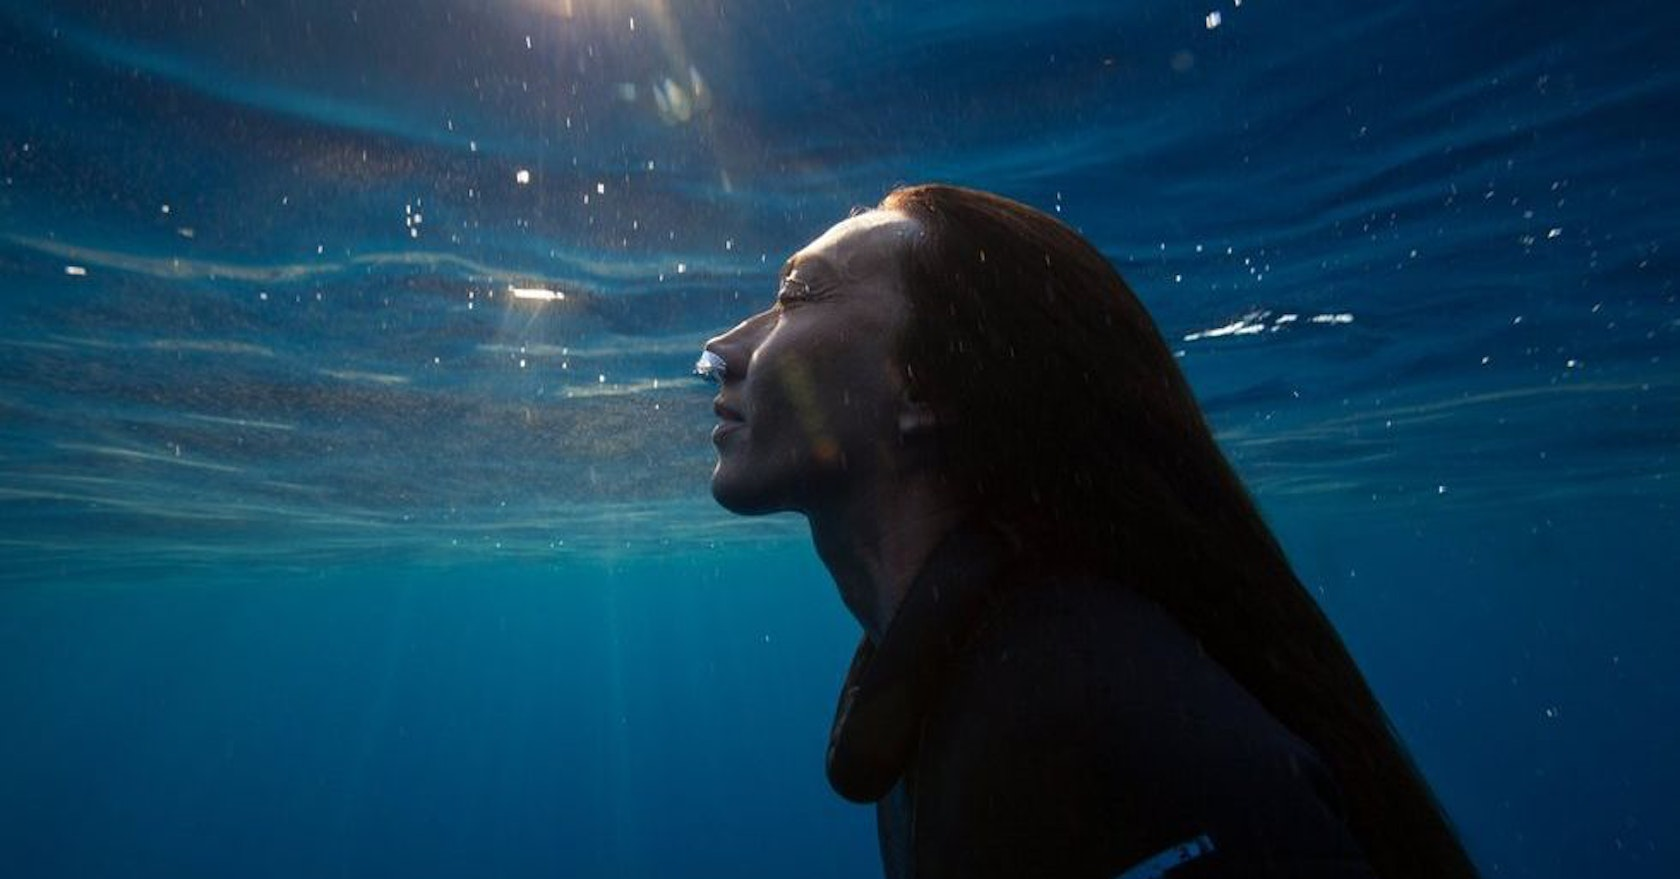 """""""It's the strongest form of meditation I have ever experienced"""": the life of a female freediver"""